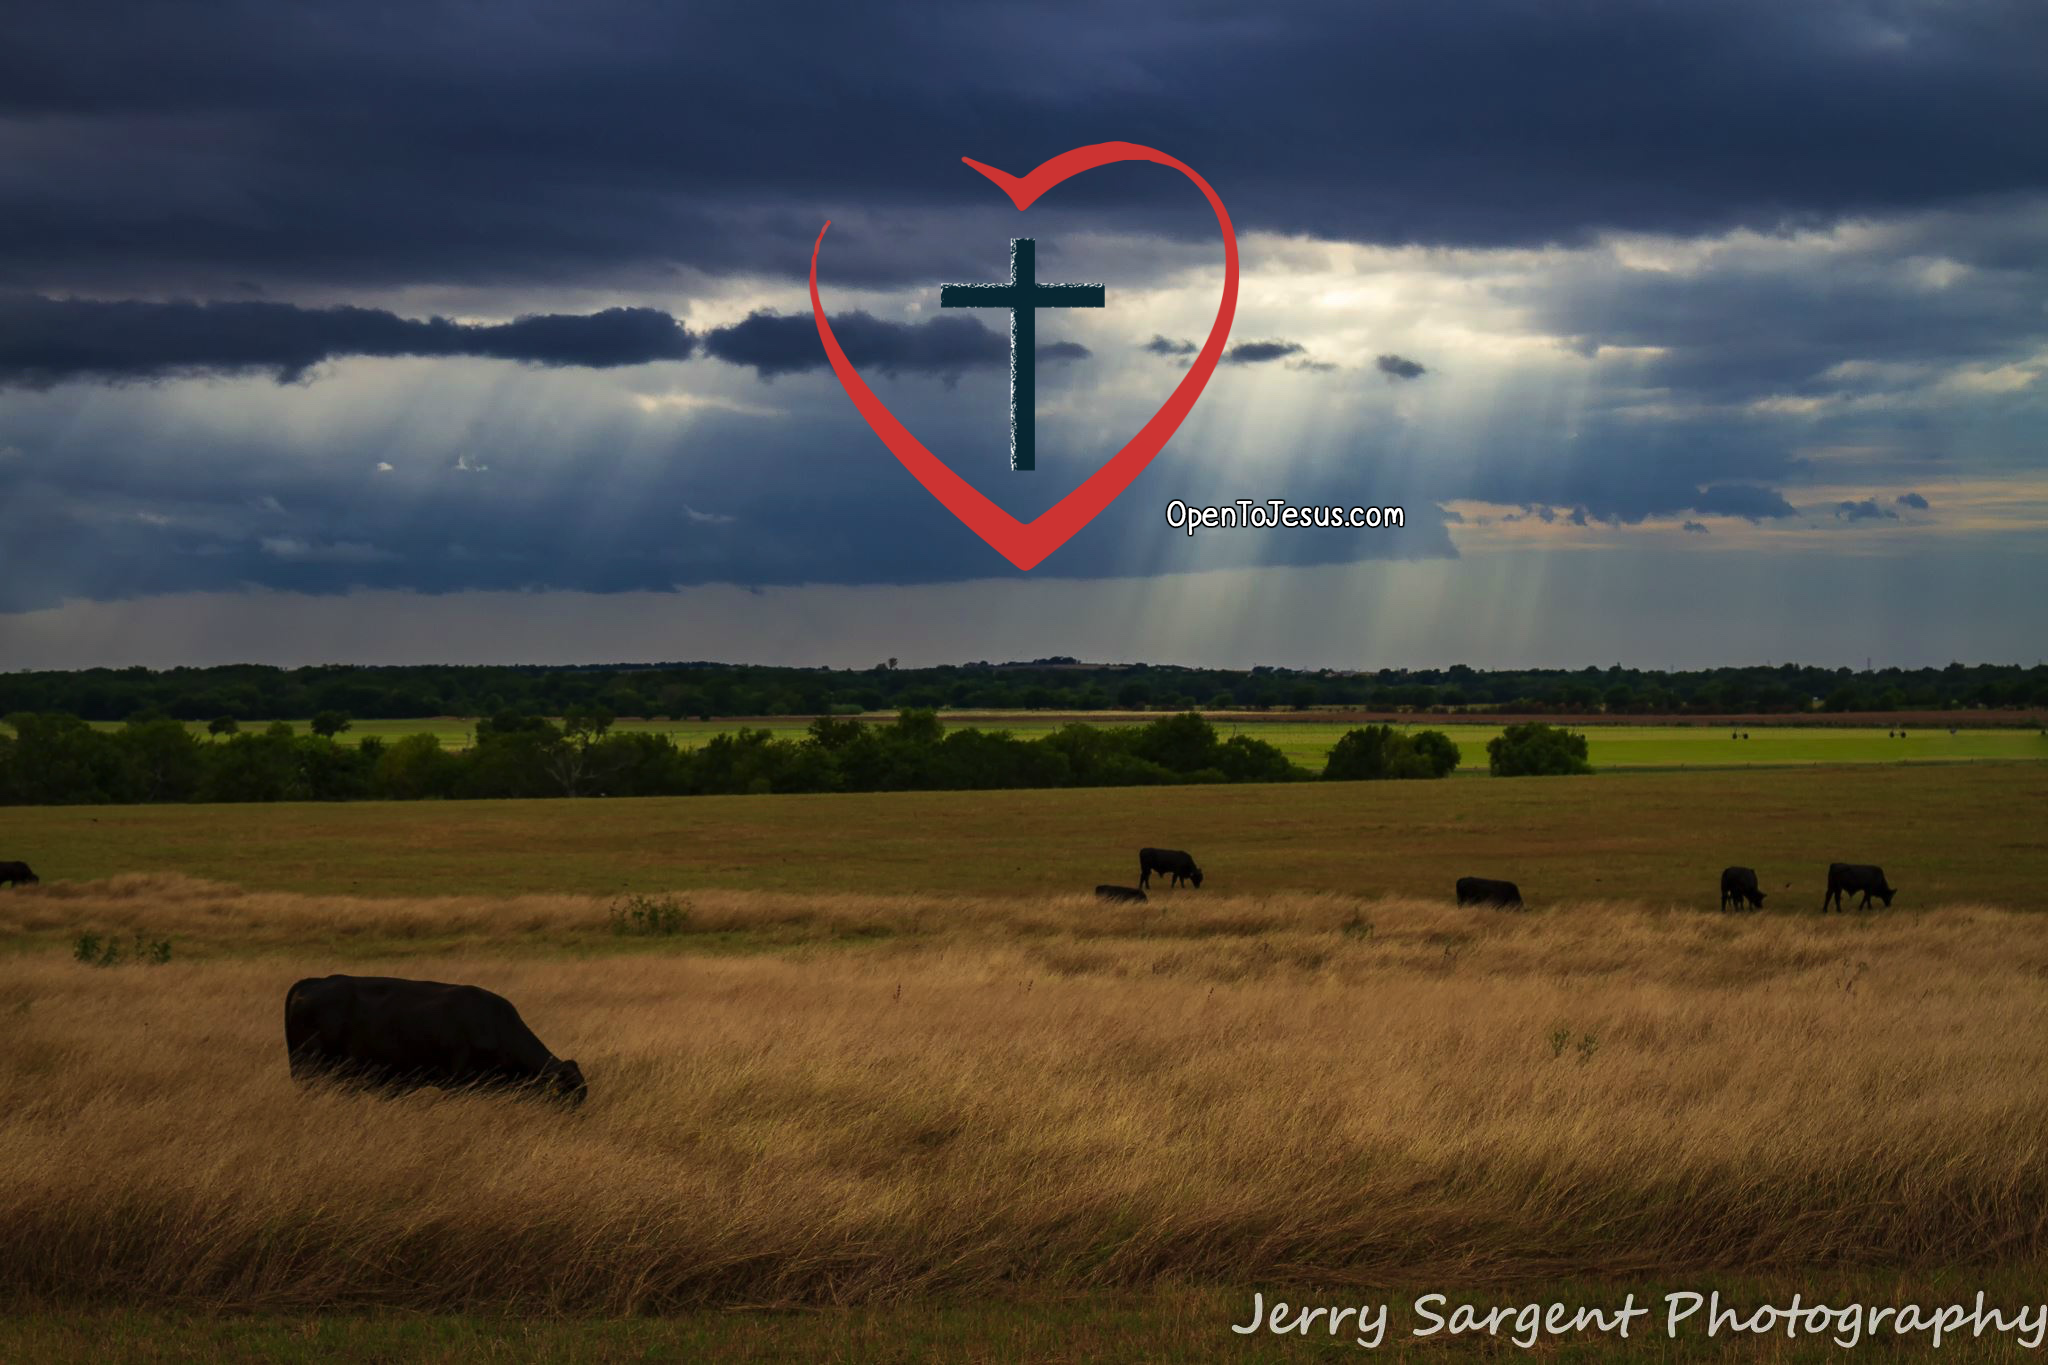 Jerry Sargent Photography / Sunbeams from Heaven